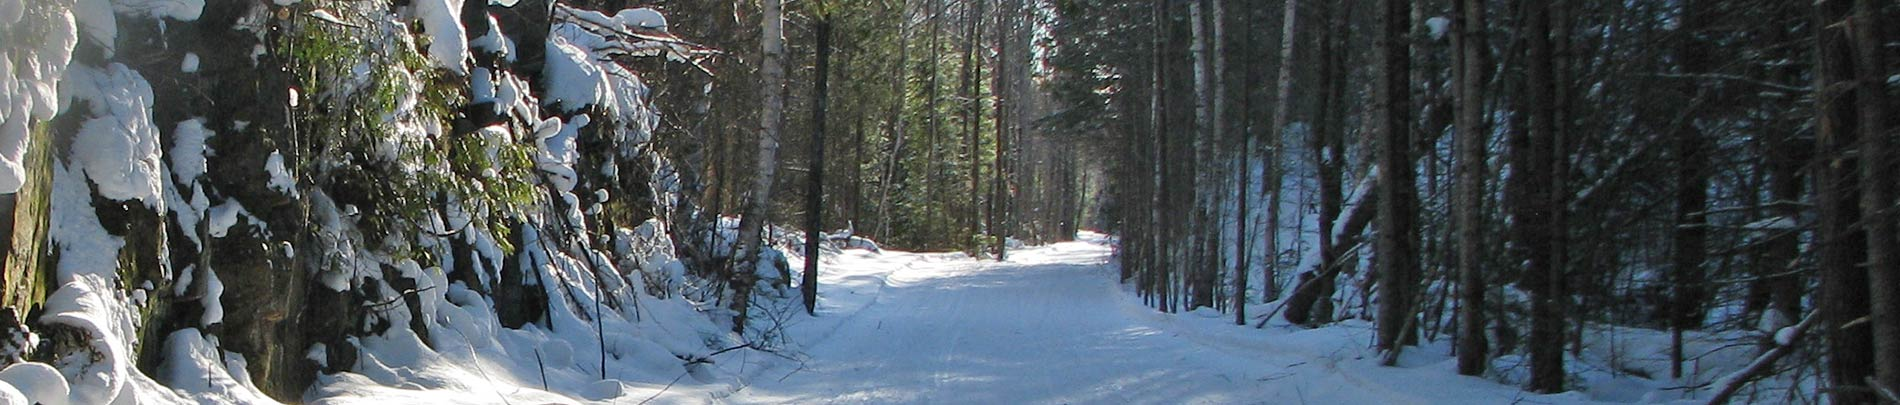 A snow covered trail in winter with sun shining down through the trees.